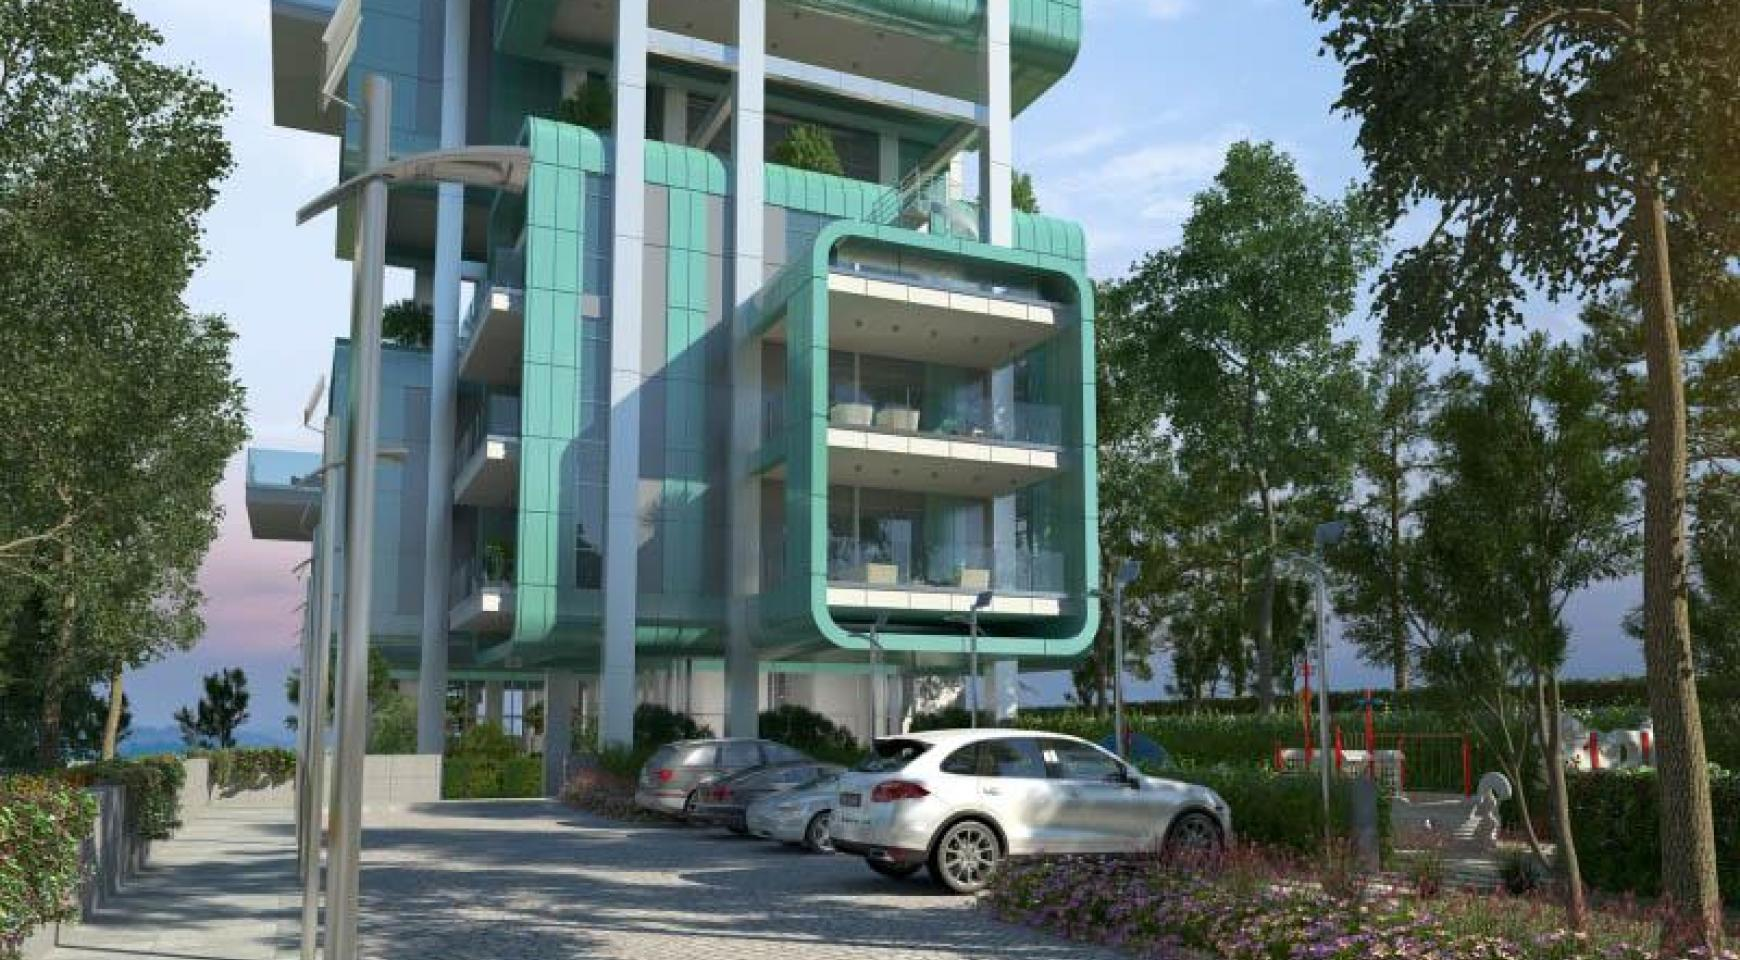 3 Bedroom Apartment with Roof Garden within a New Complex - 30